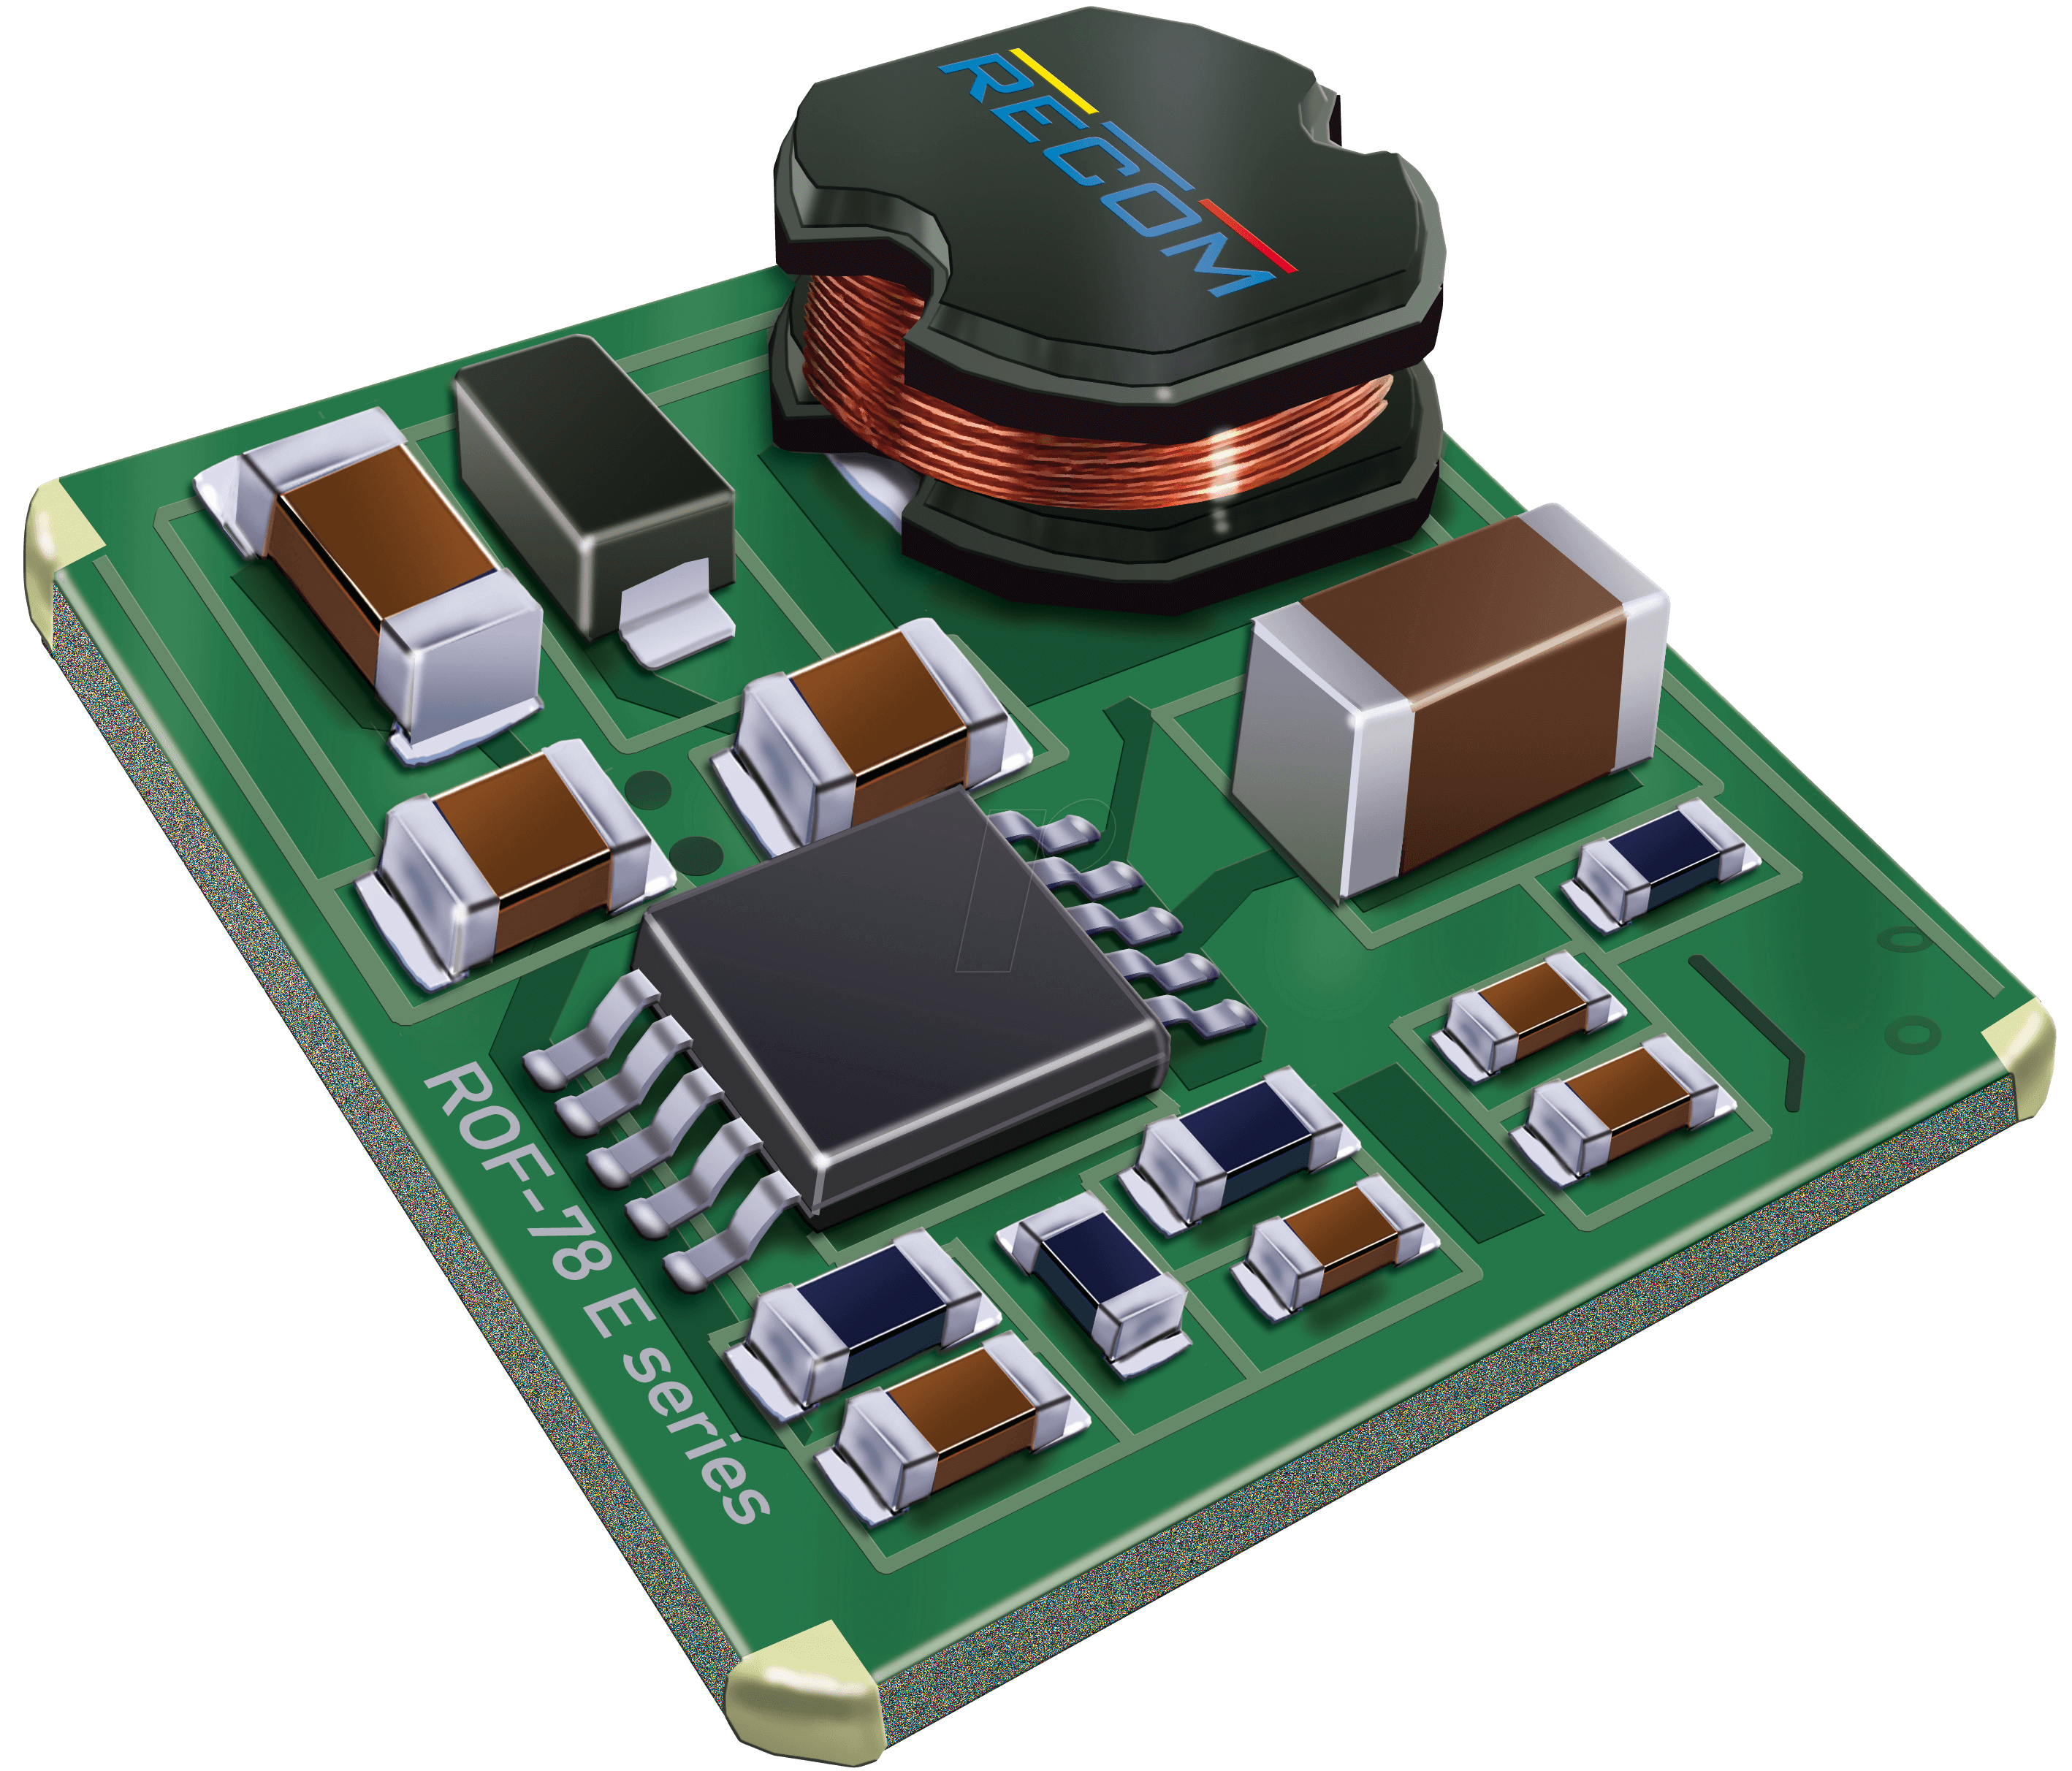 power-supply-unit-dc-to-dc-converter-voltage-converter-power-converters-datasheet-others-2d7d138f6355b08bf1625f5834d6508f